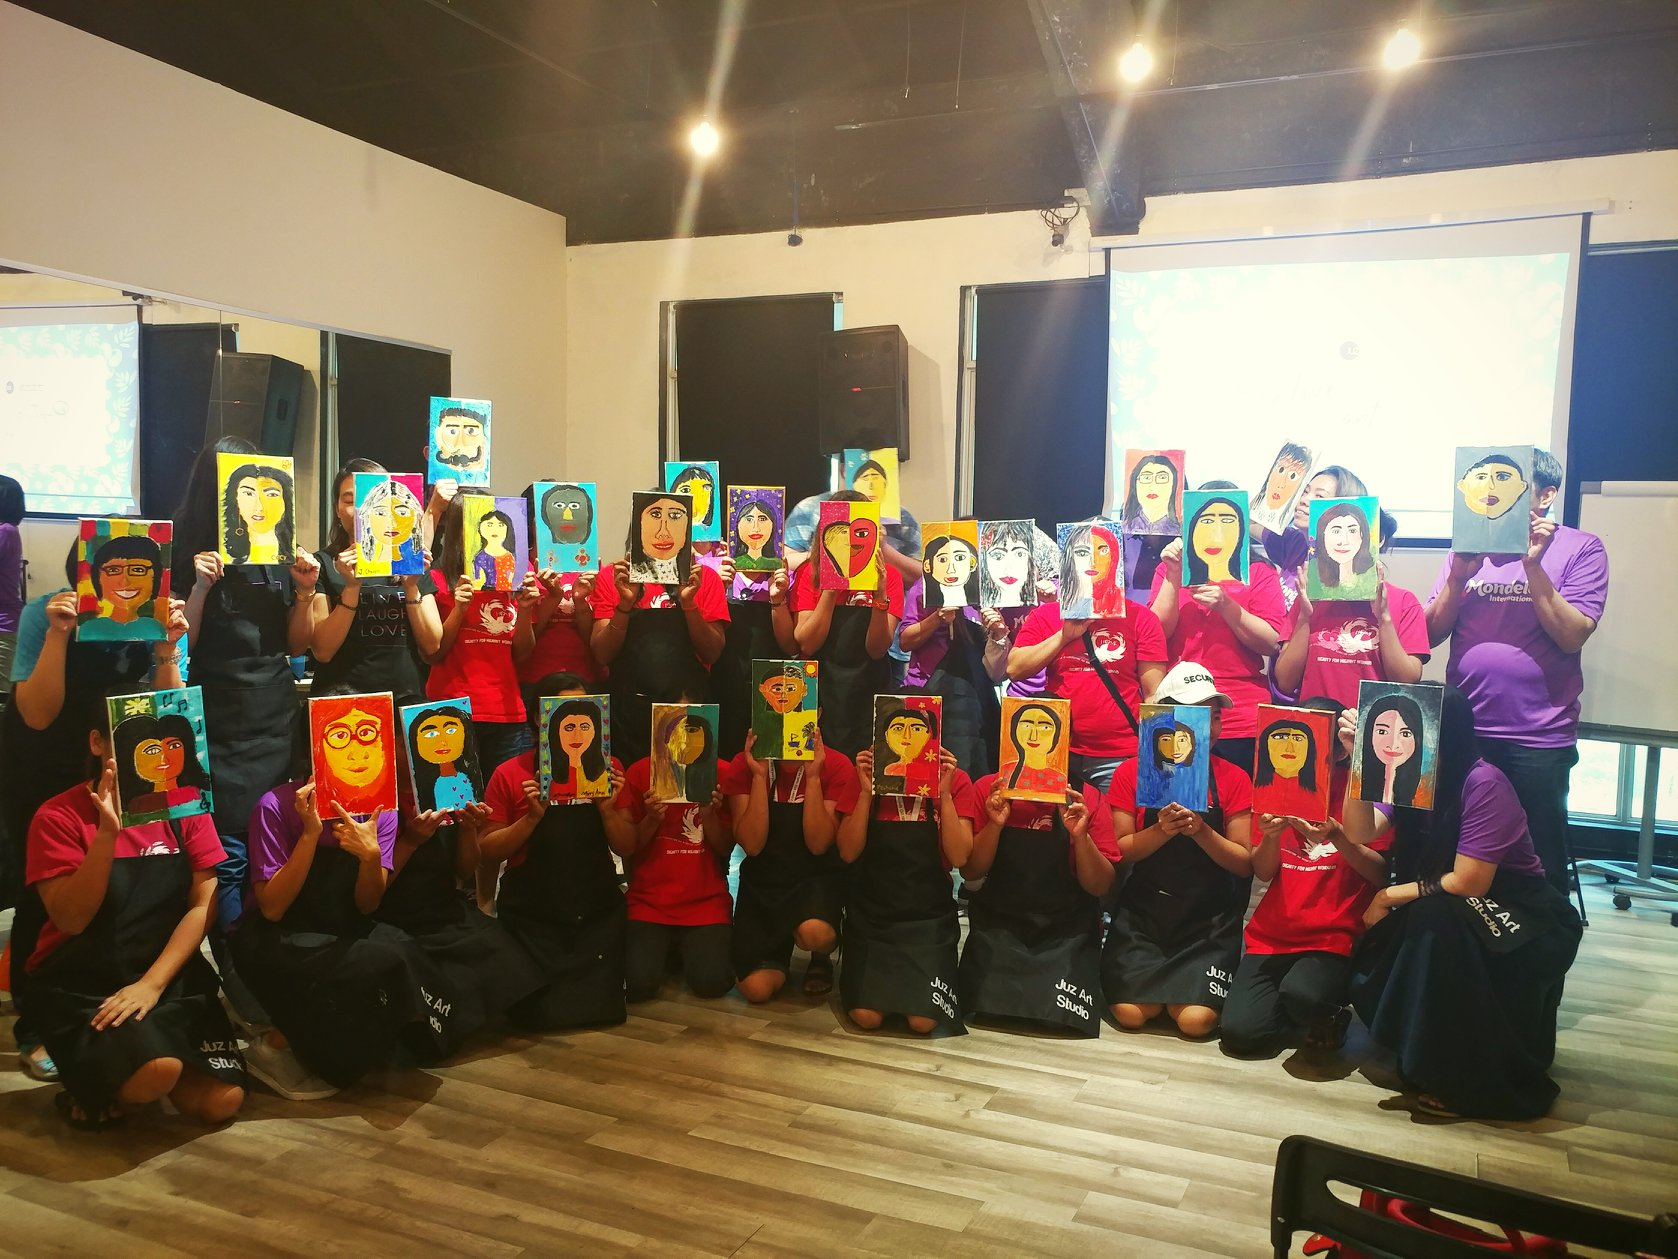 An art therapy session for domestic workers